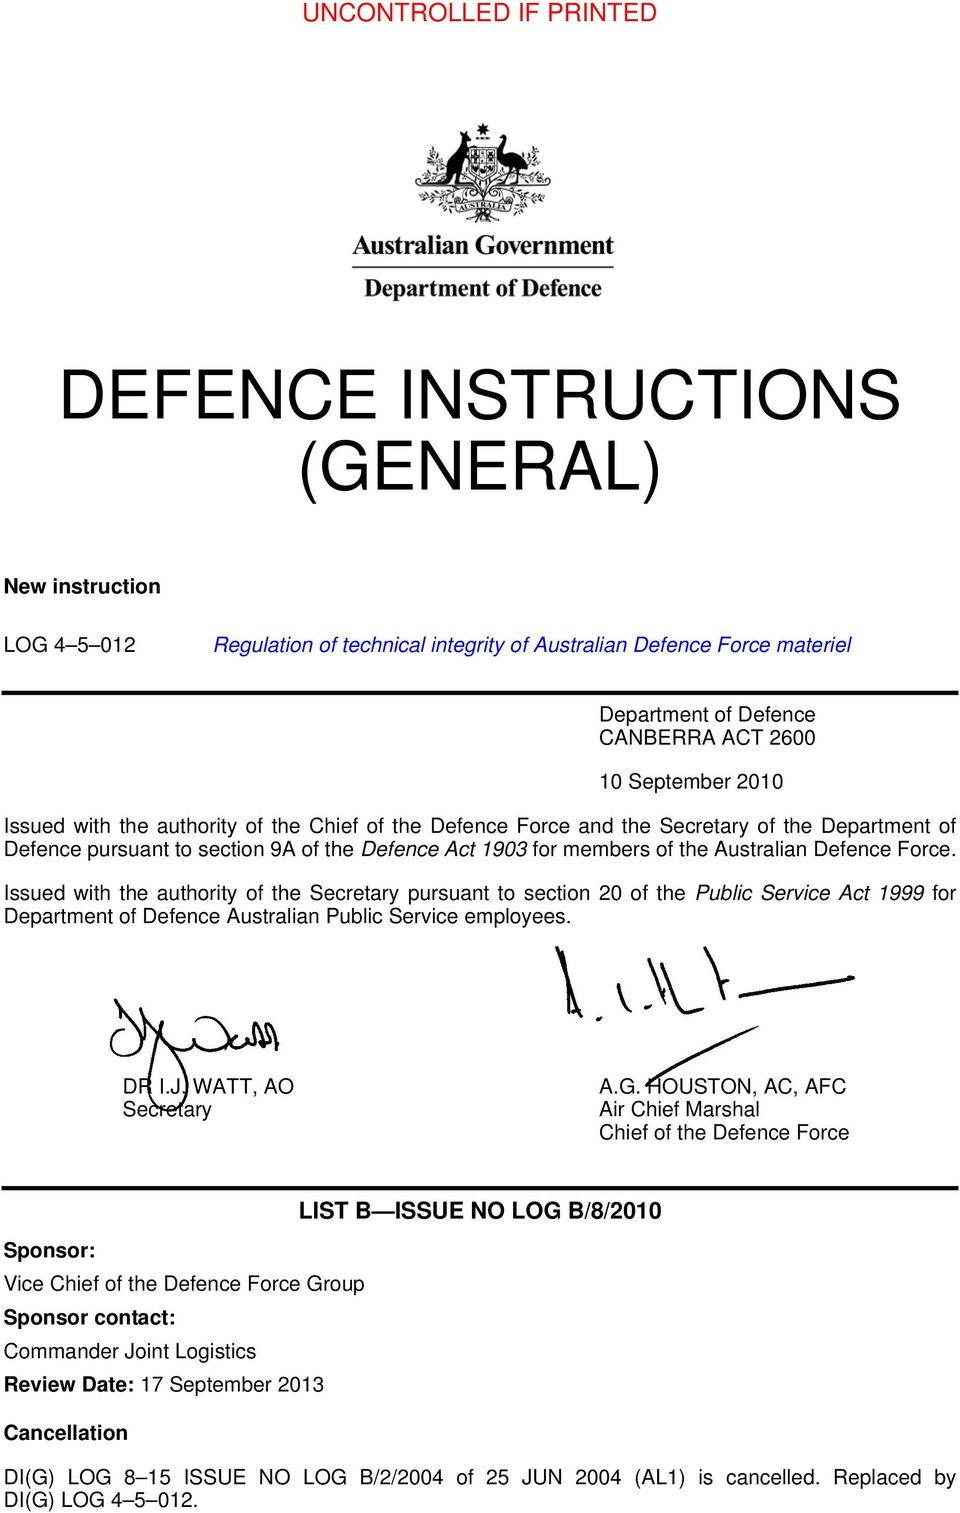 Issued with the authority of the Secretary pursuant to section 20 of the Public Service Act 1999 for Department of Defence Australian Public Service employees. DR I.J. WATT, AO Secretary A.G.